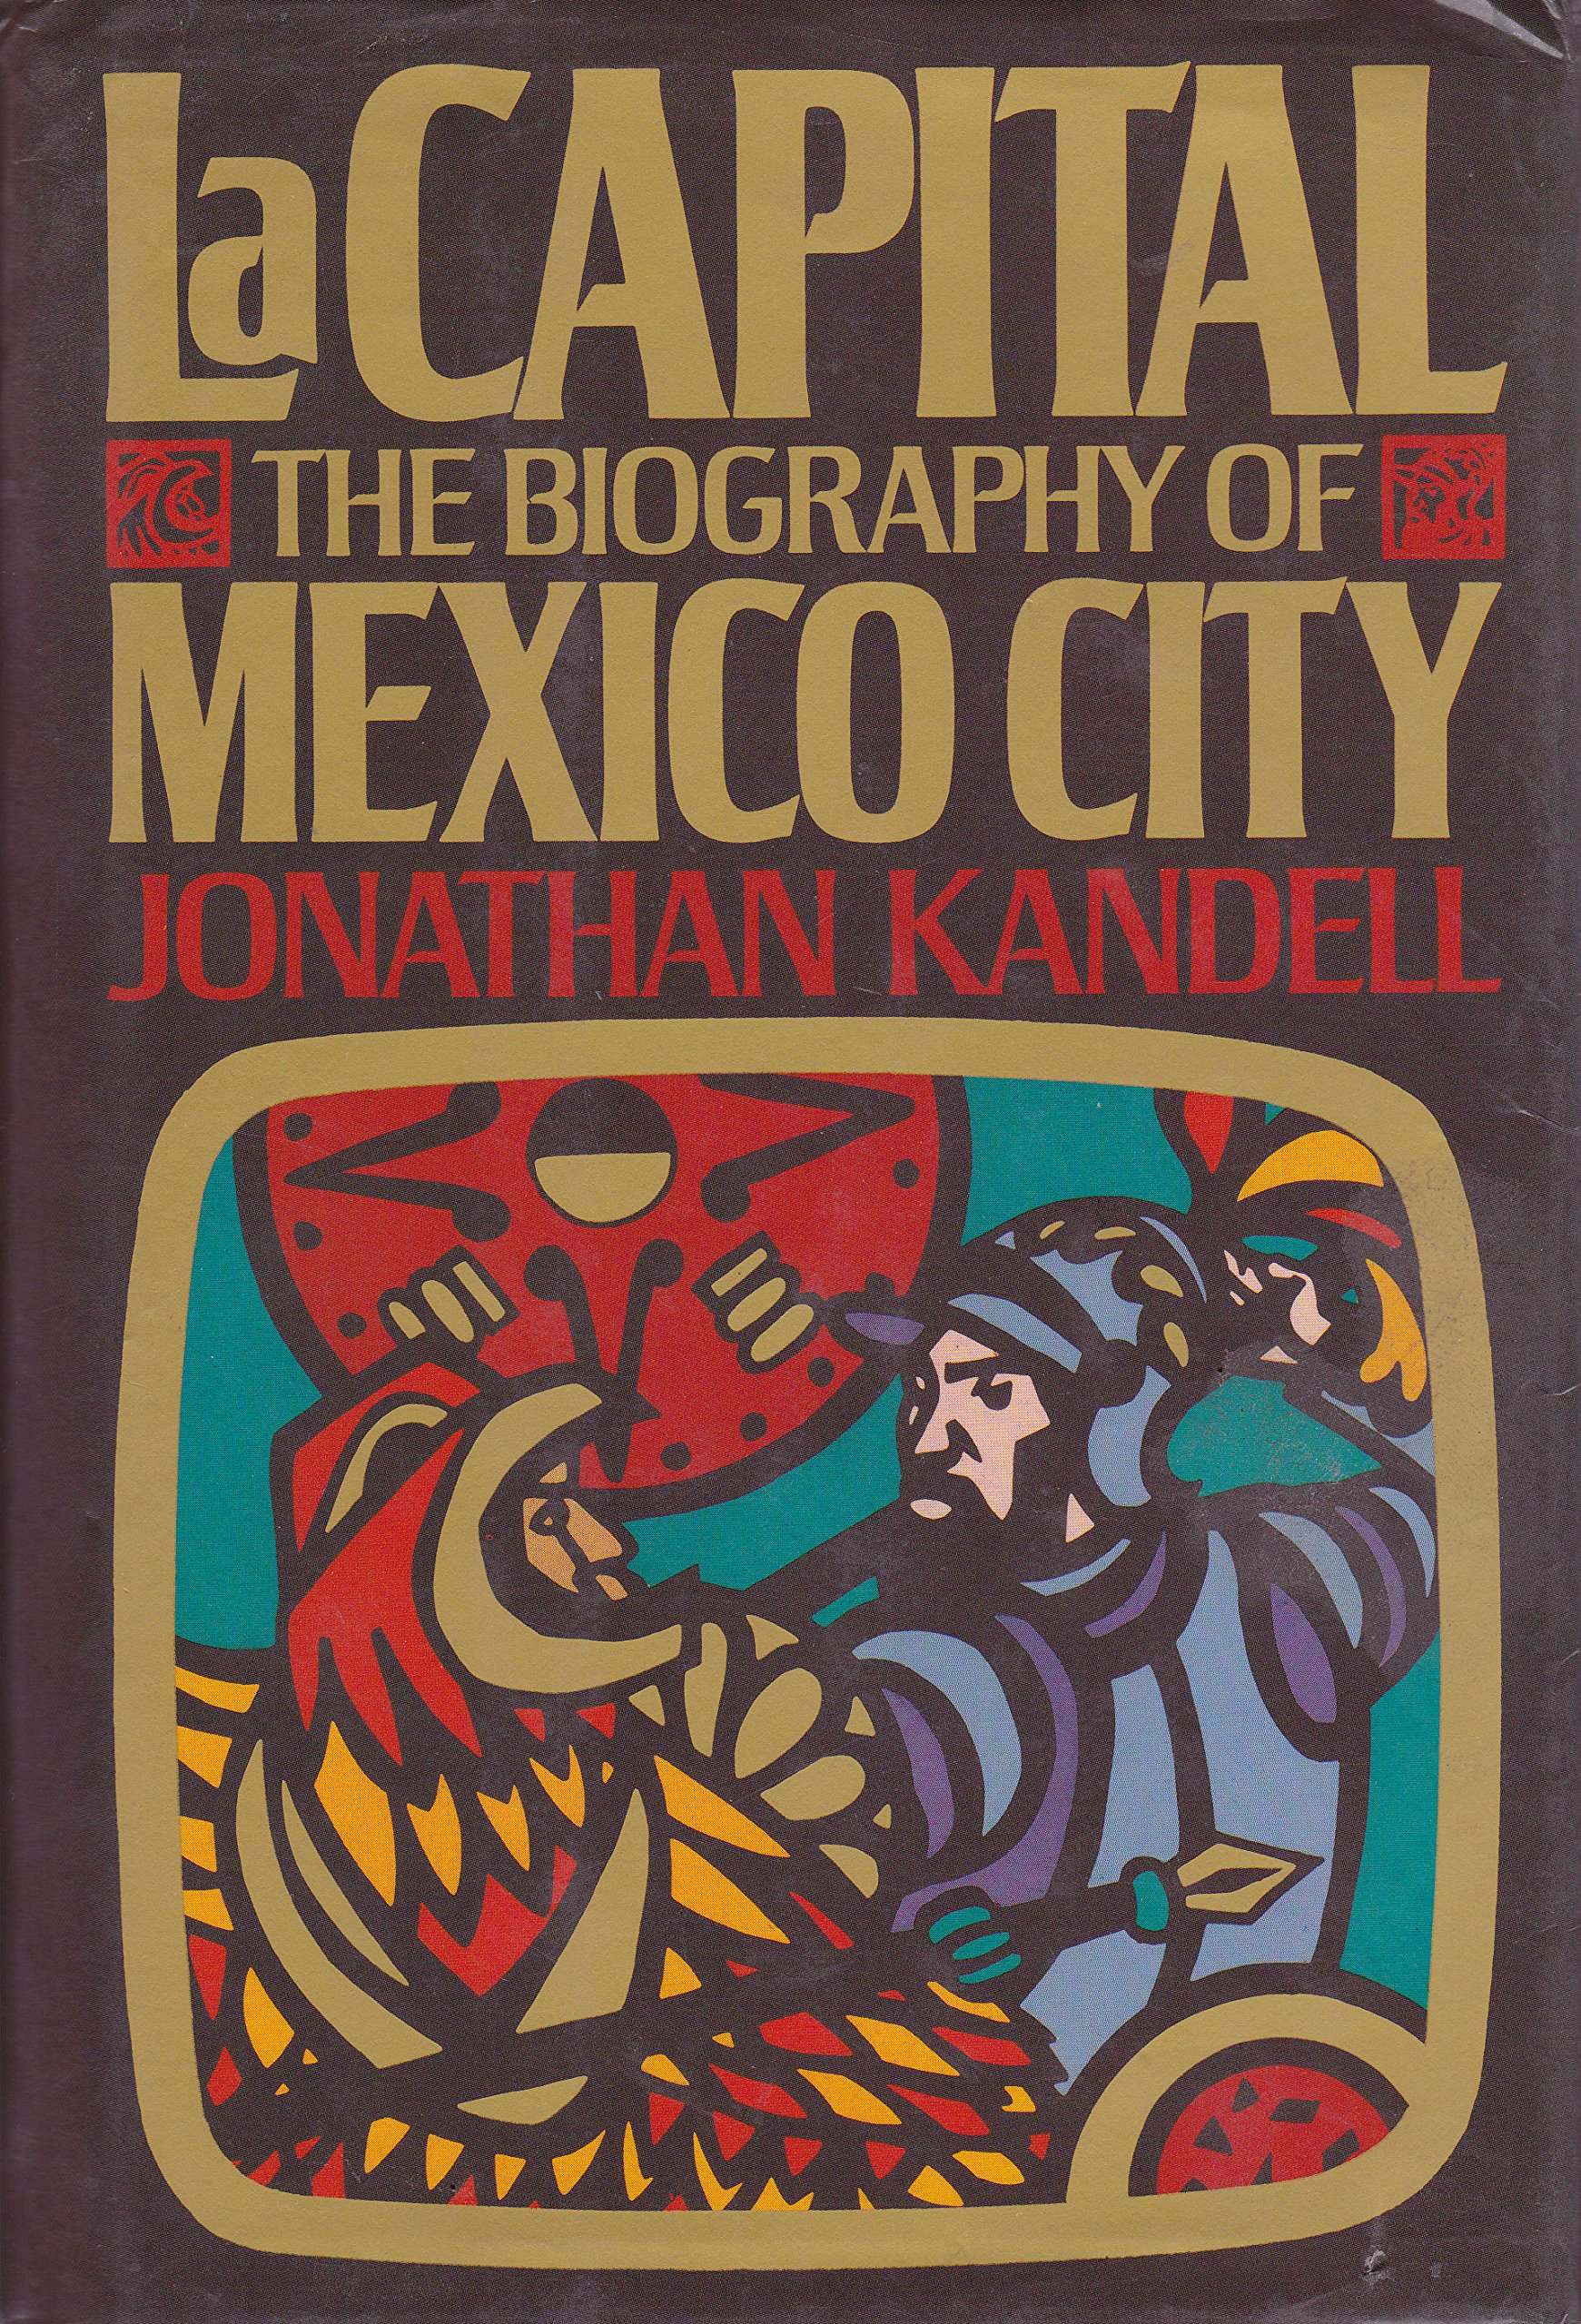 Ebook La Capital The Biography Of Mexico City By Jonathan Kandell